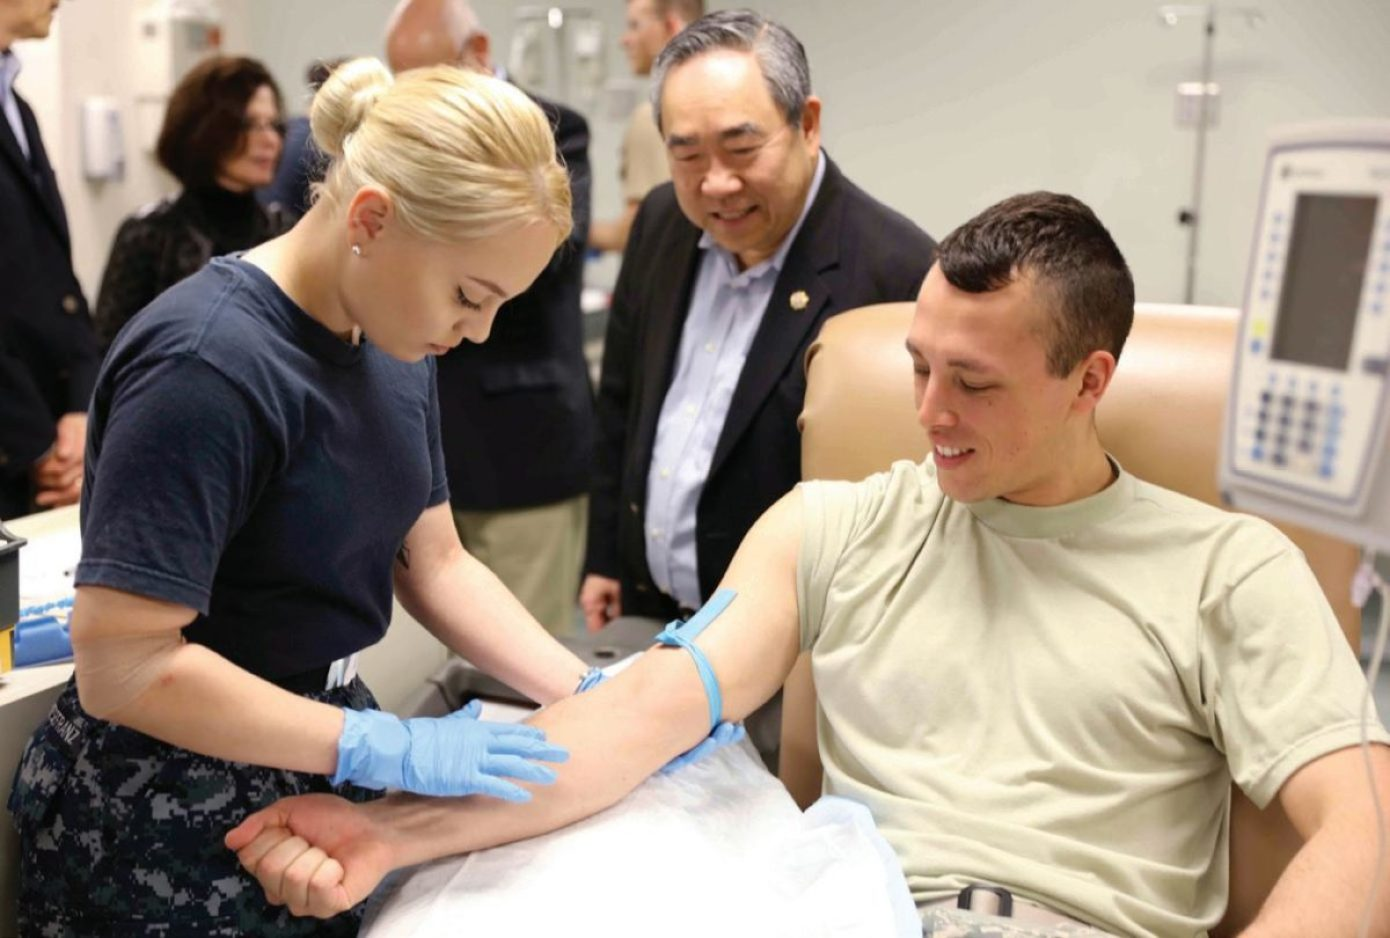 Retired U.S. Public Health Service Rear Adm. (Dr.) Kenneth Moritsugu, a member of the Uniformed Services University of the Health Sciences board of regents, watches as students in the medical laboratory technologist (MLT) training program at the Medical Education and Training Campus in San Antonio, Texas, practice blood draw skills. The MLT program is one of several programs that are eligible for college credit under USUHS's College of Allied Health Sciences.